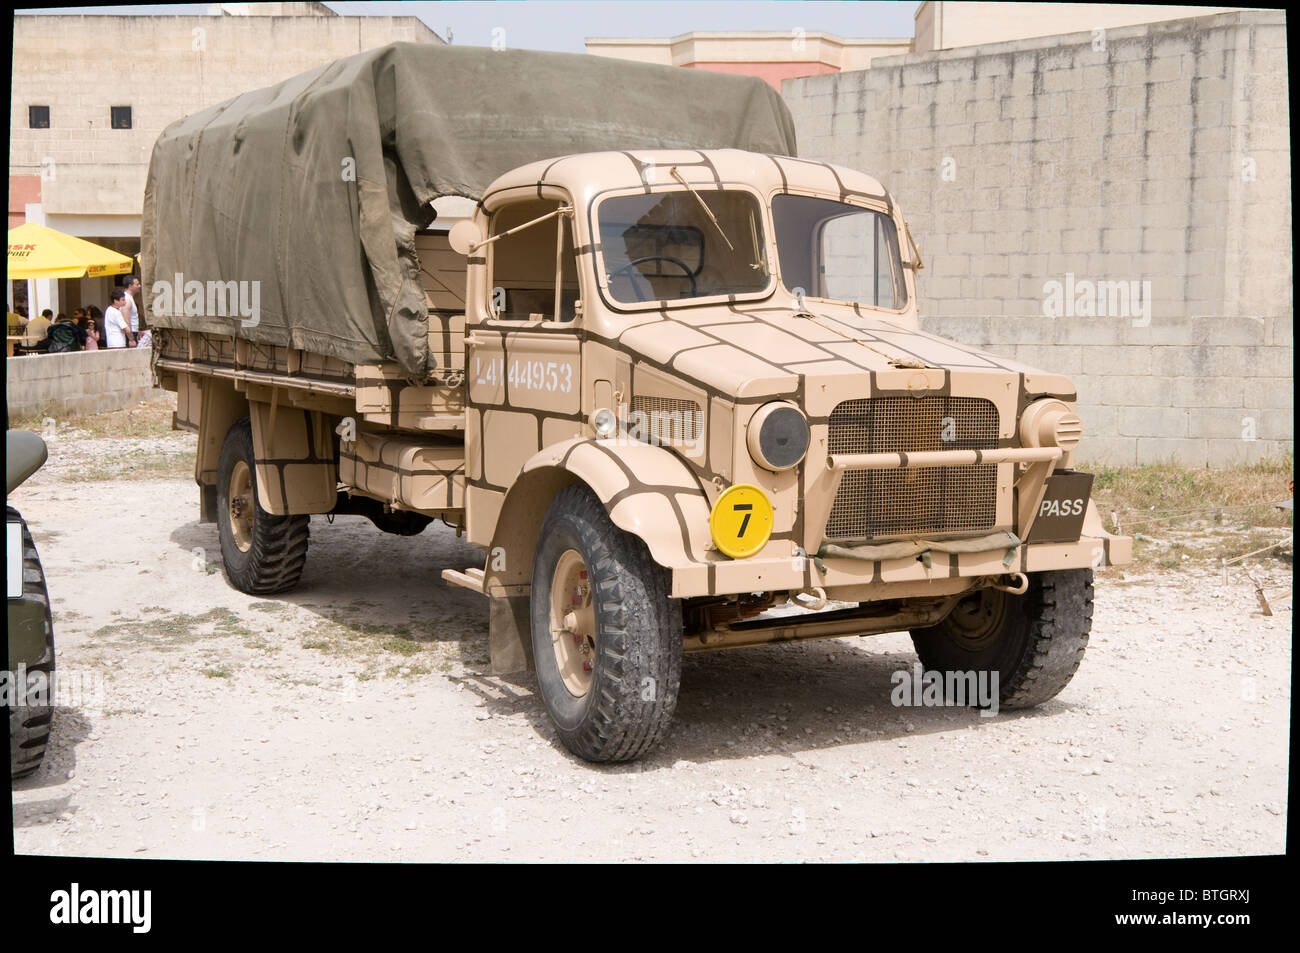 The Bedford lorry is seen taking part in the 2009 Military Mtarfa day. The lorry has been restored in military colours - Stock Image